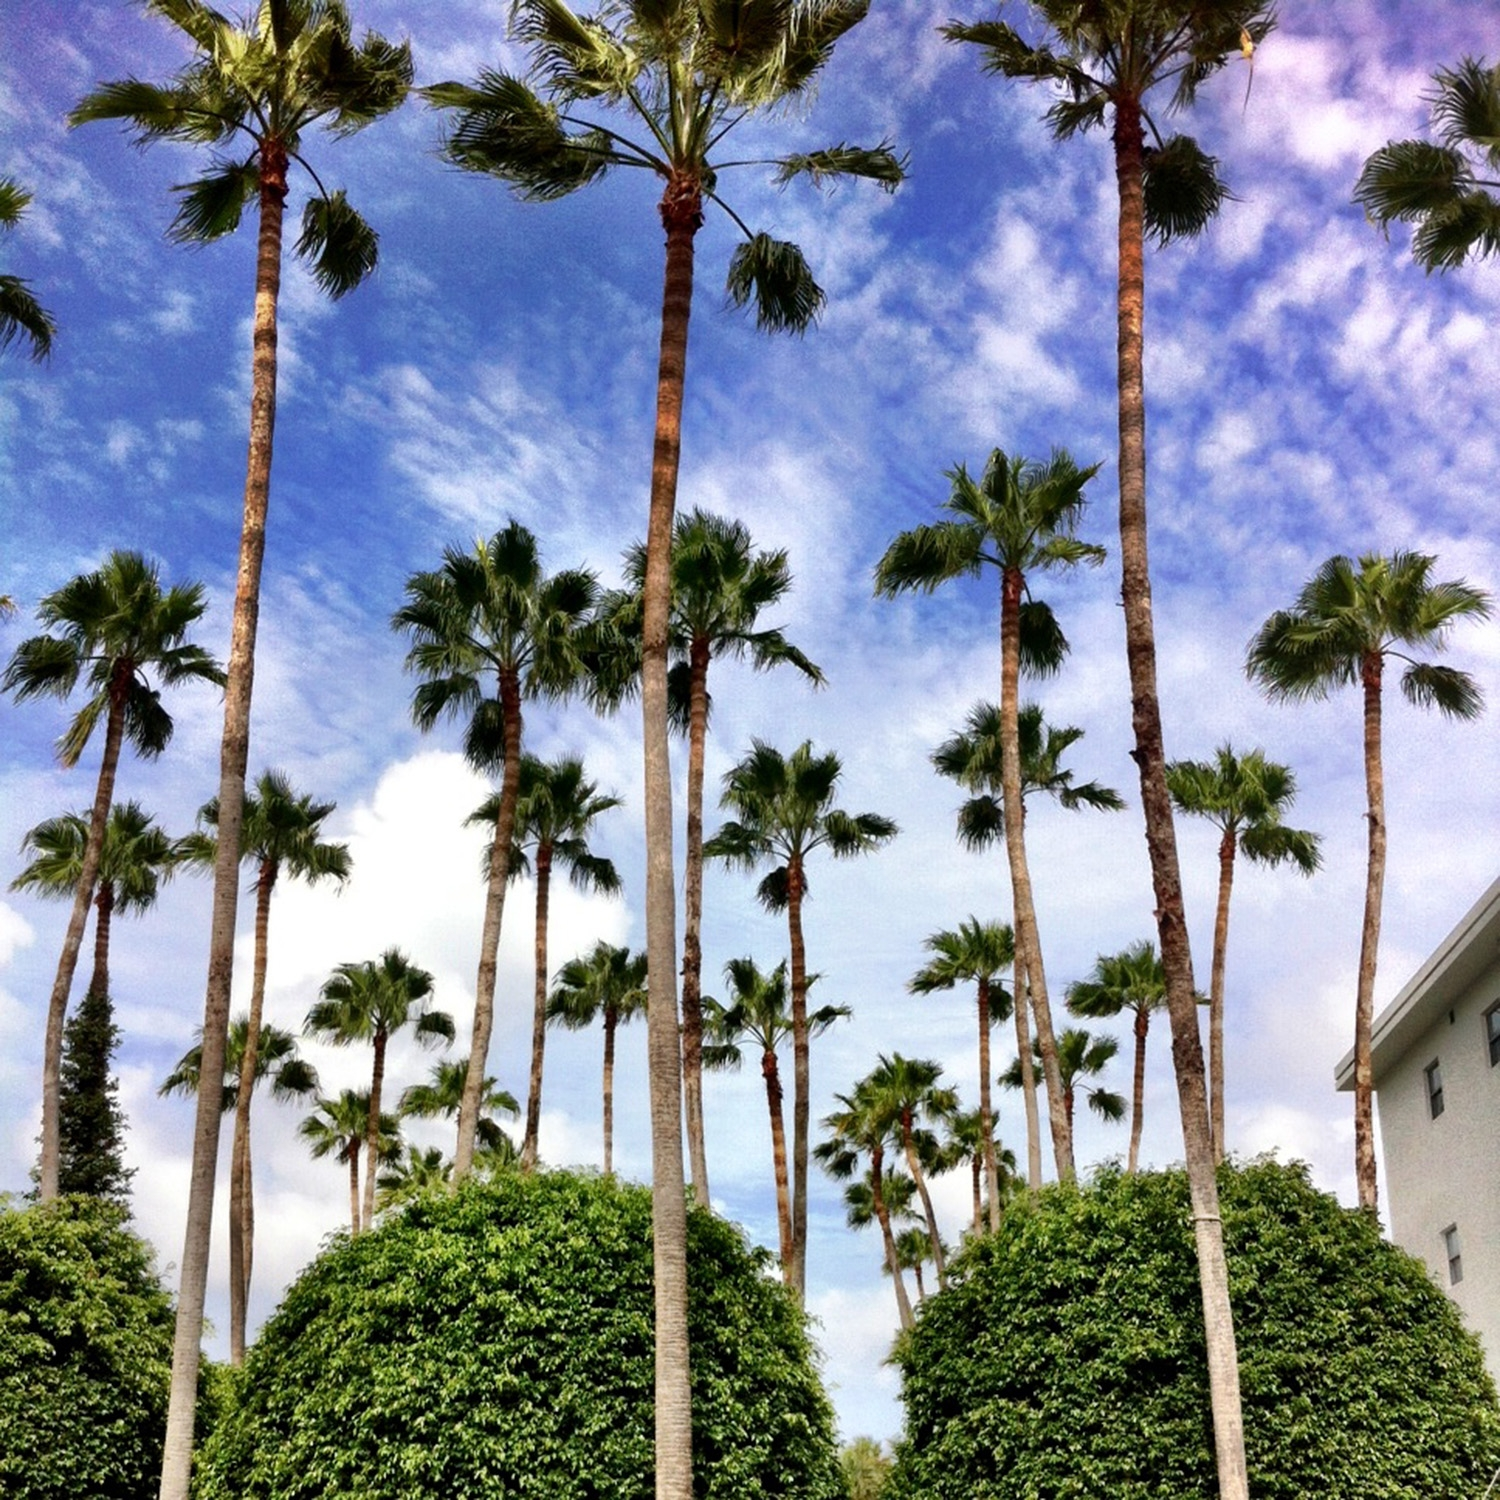 Looking up at the tall skinny palms and cloudy sky at The Delano